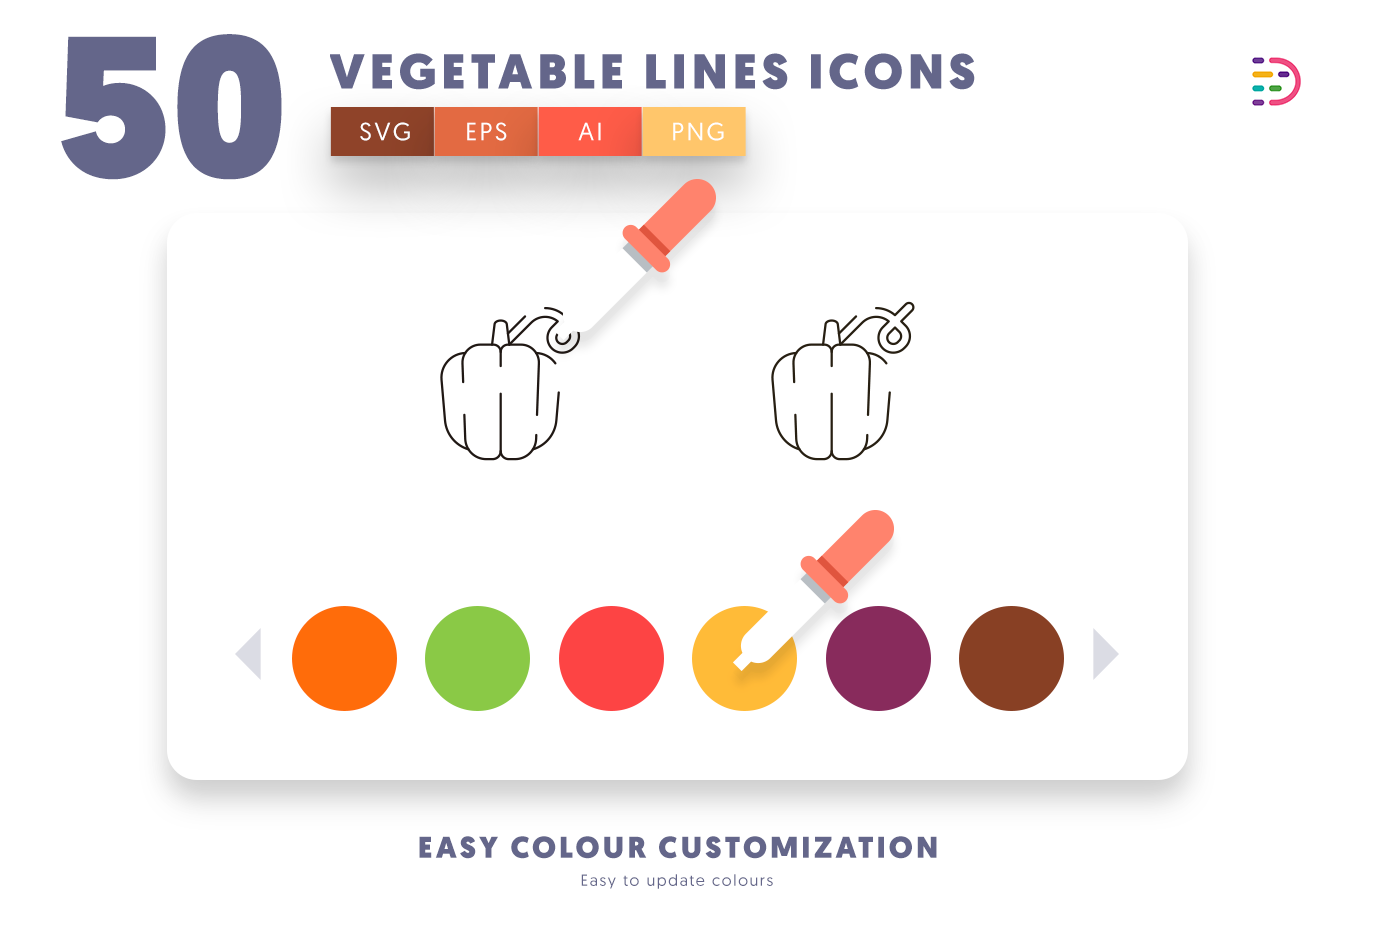 Customizable and vector 50 Vegetable Lines Icons